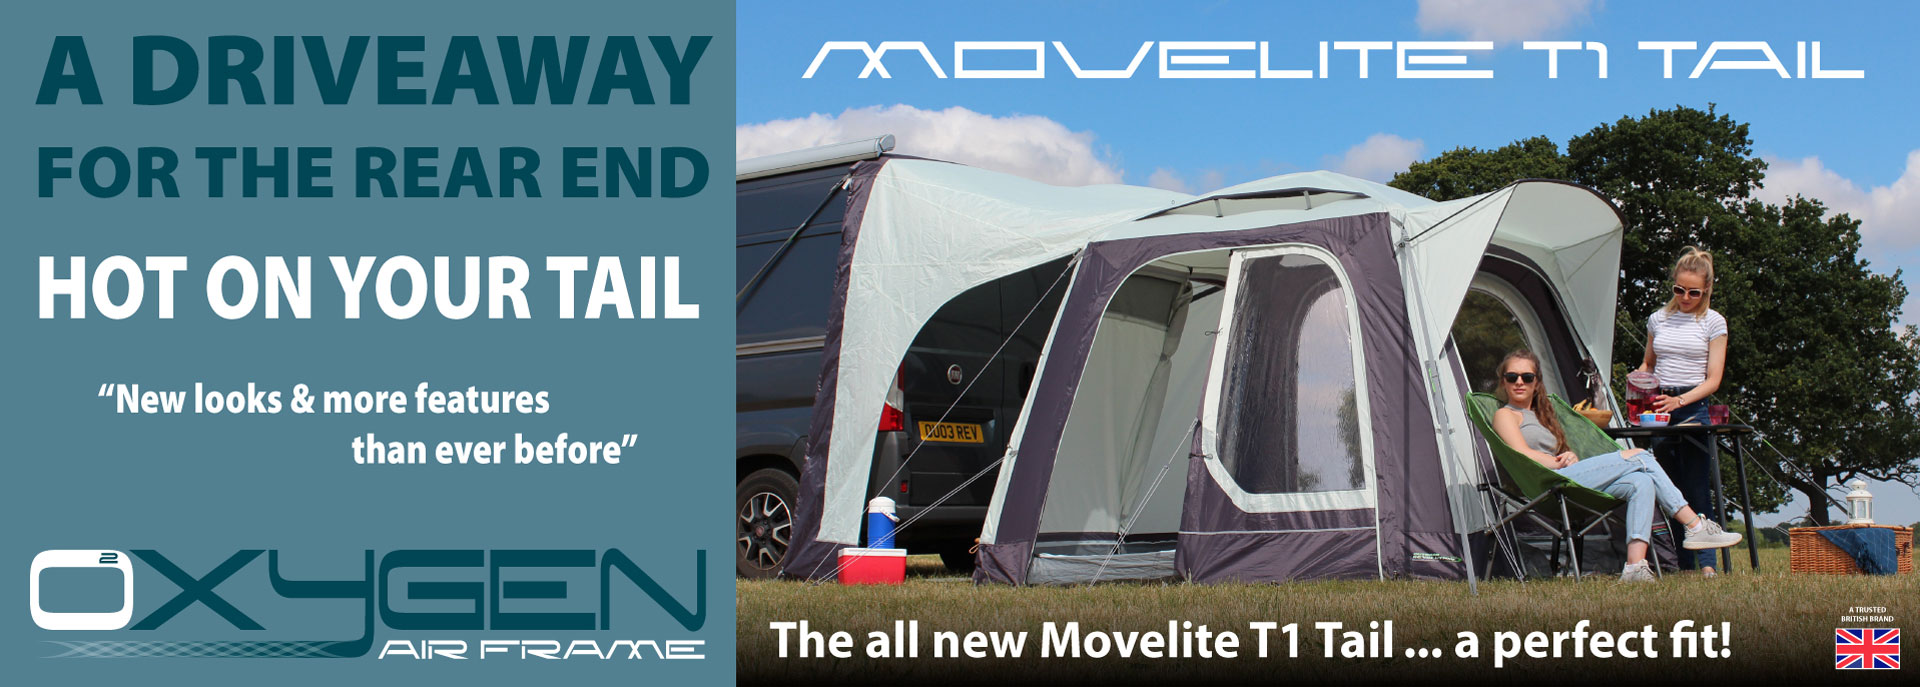 Movelite T1 Tail